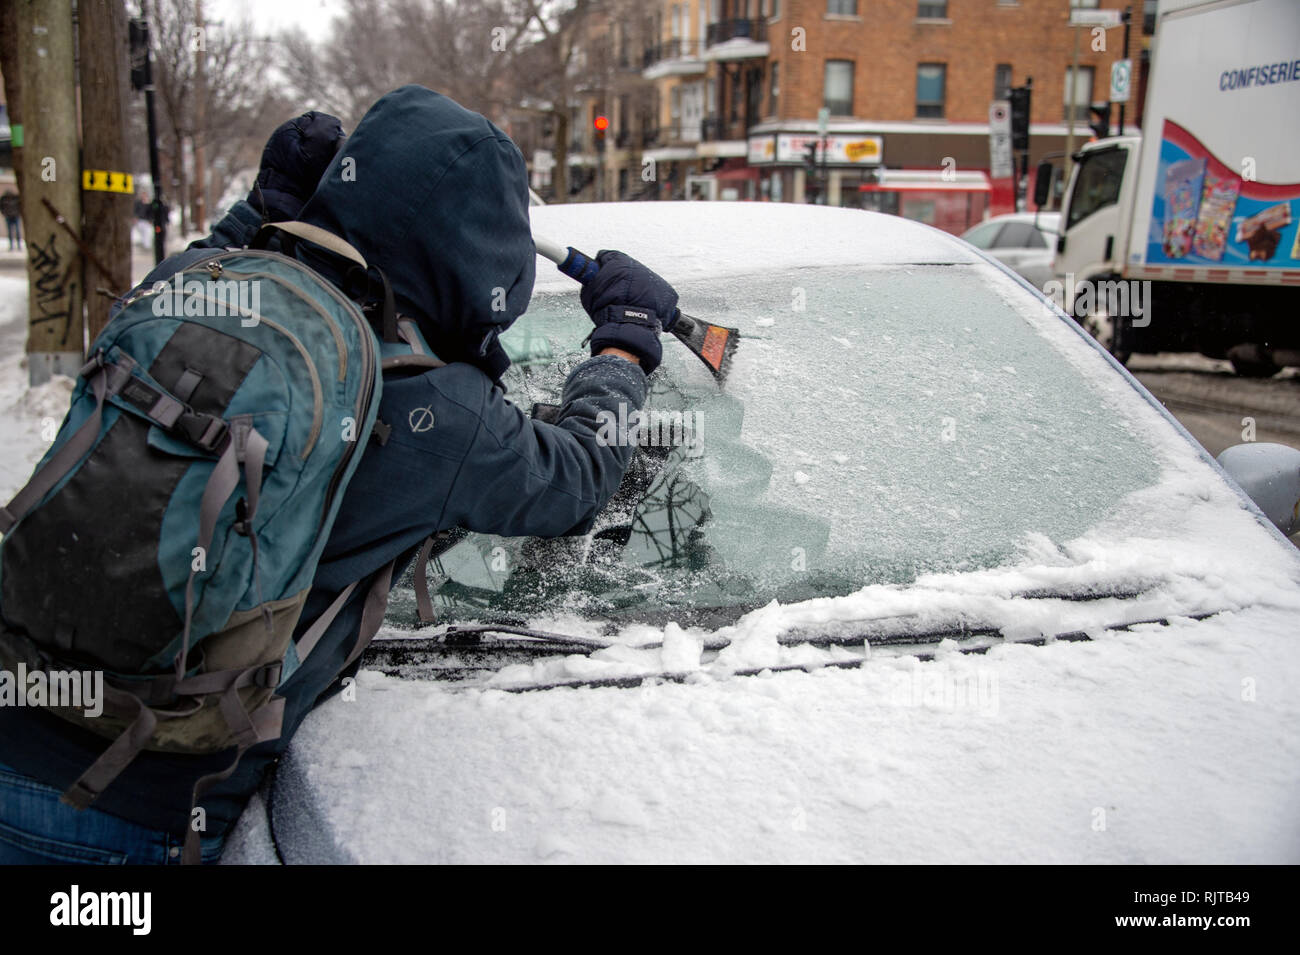 Montreal, Canada - 7 February 2019: man cleaning car windshield from ice with scraper tool. - Stock Image